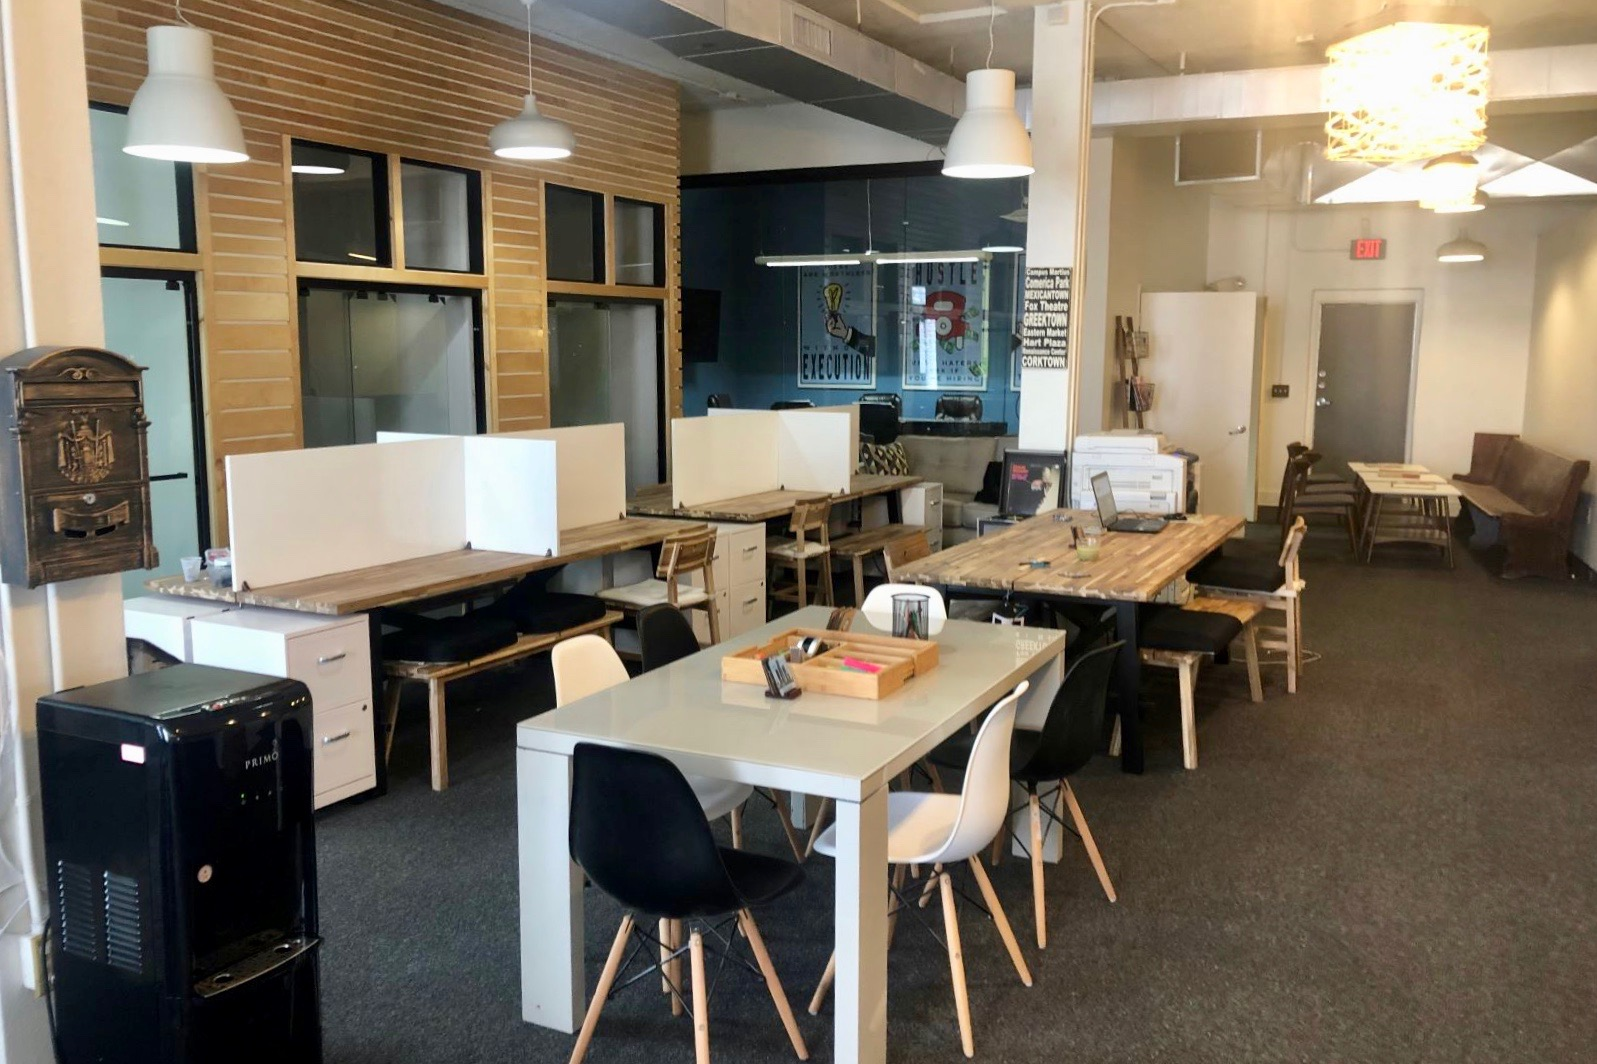 Four desks with chairs around them and some have dividers.